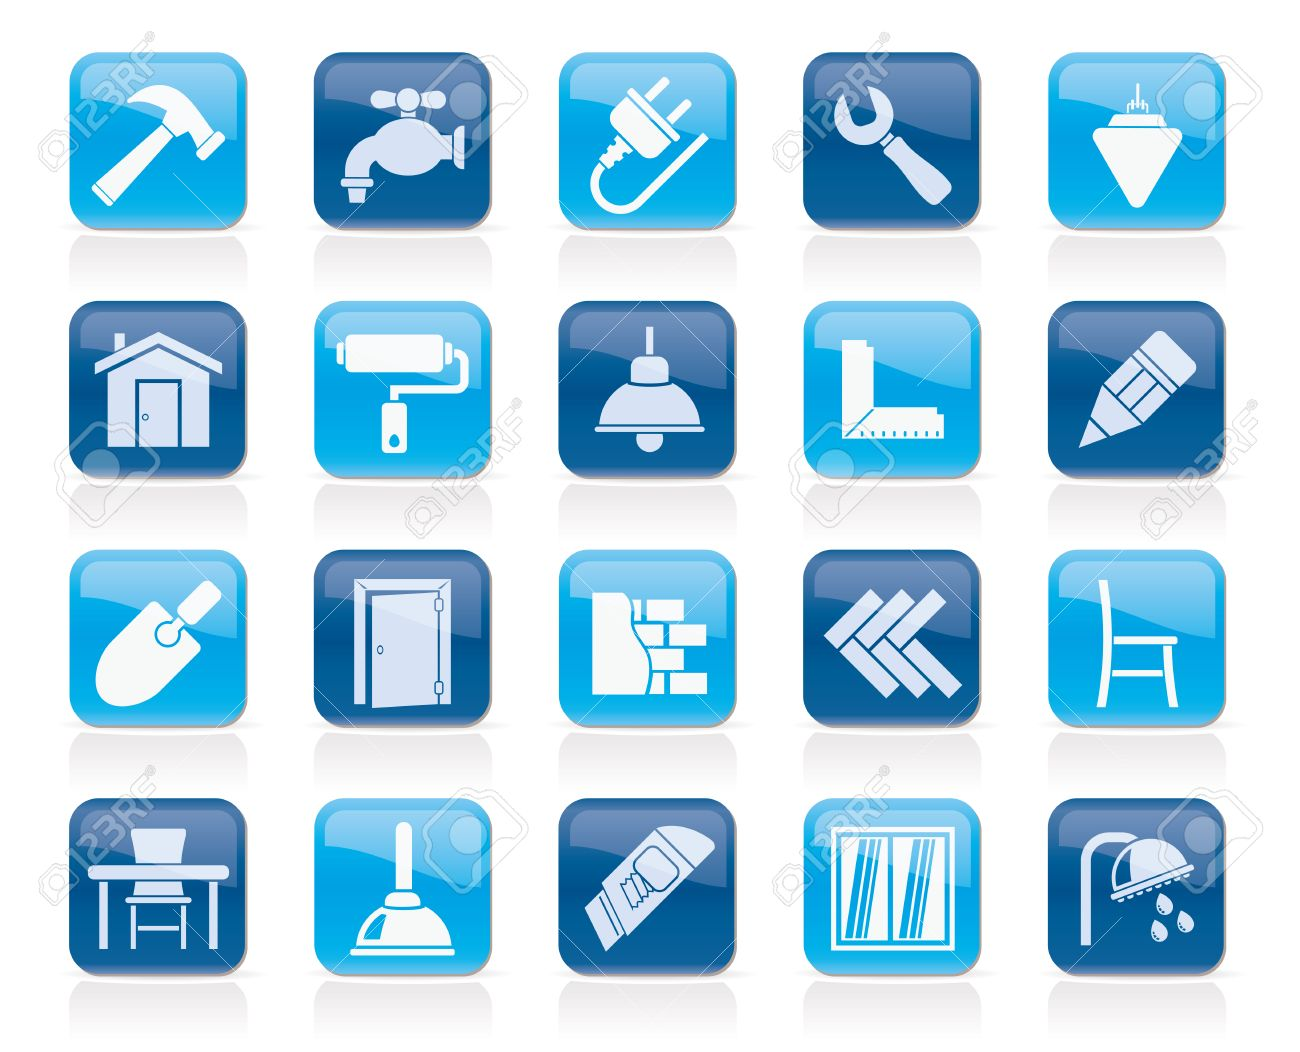 Building and home renovation icons - vector icon set - 34599605